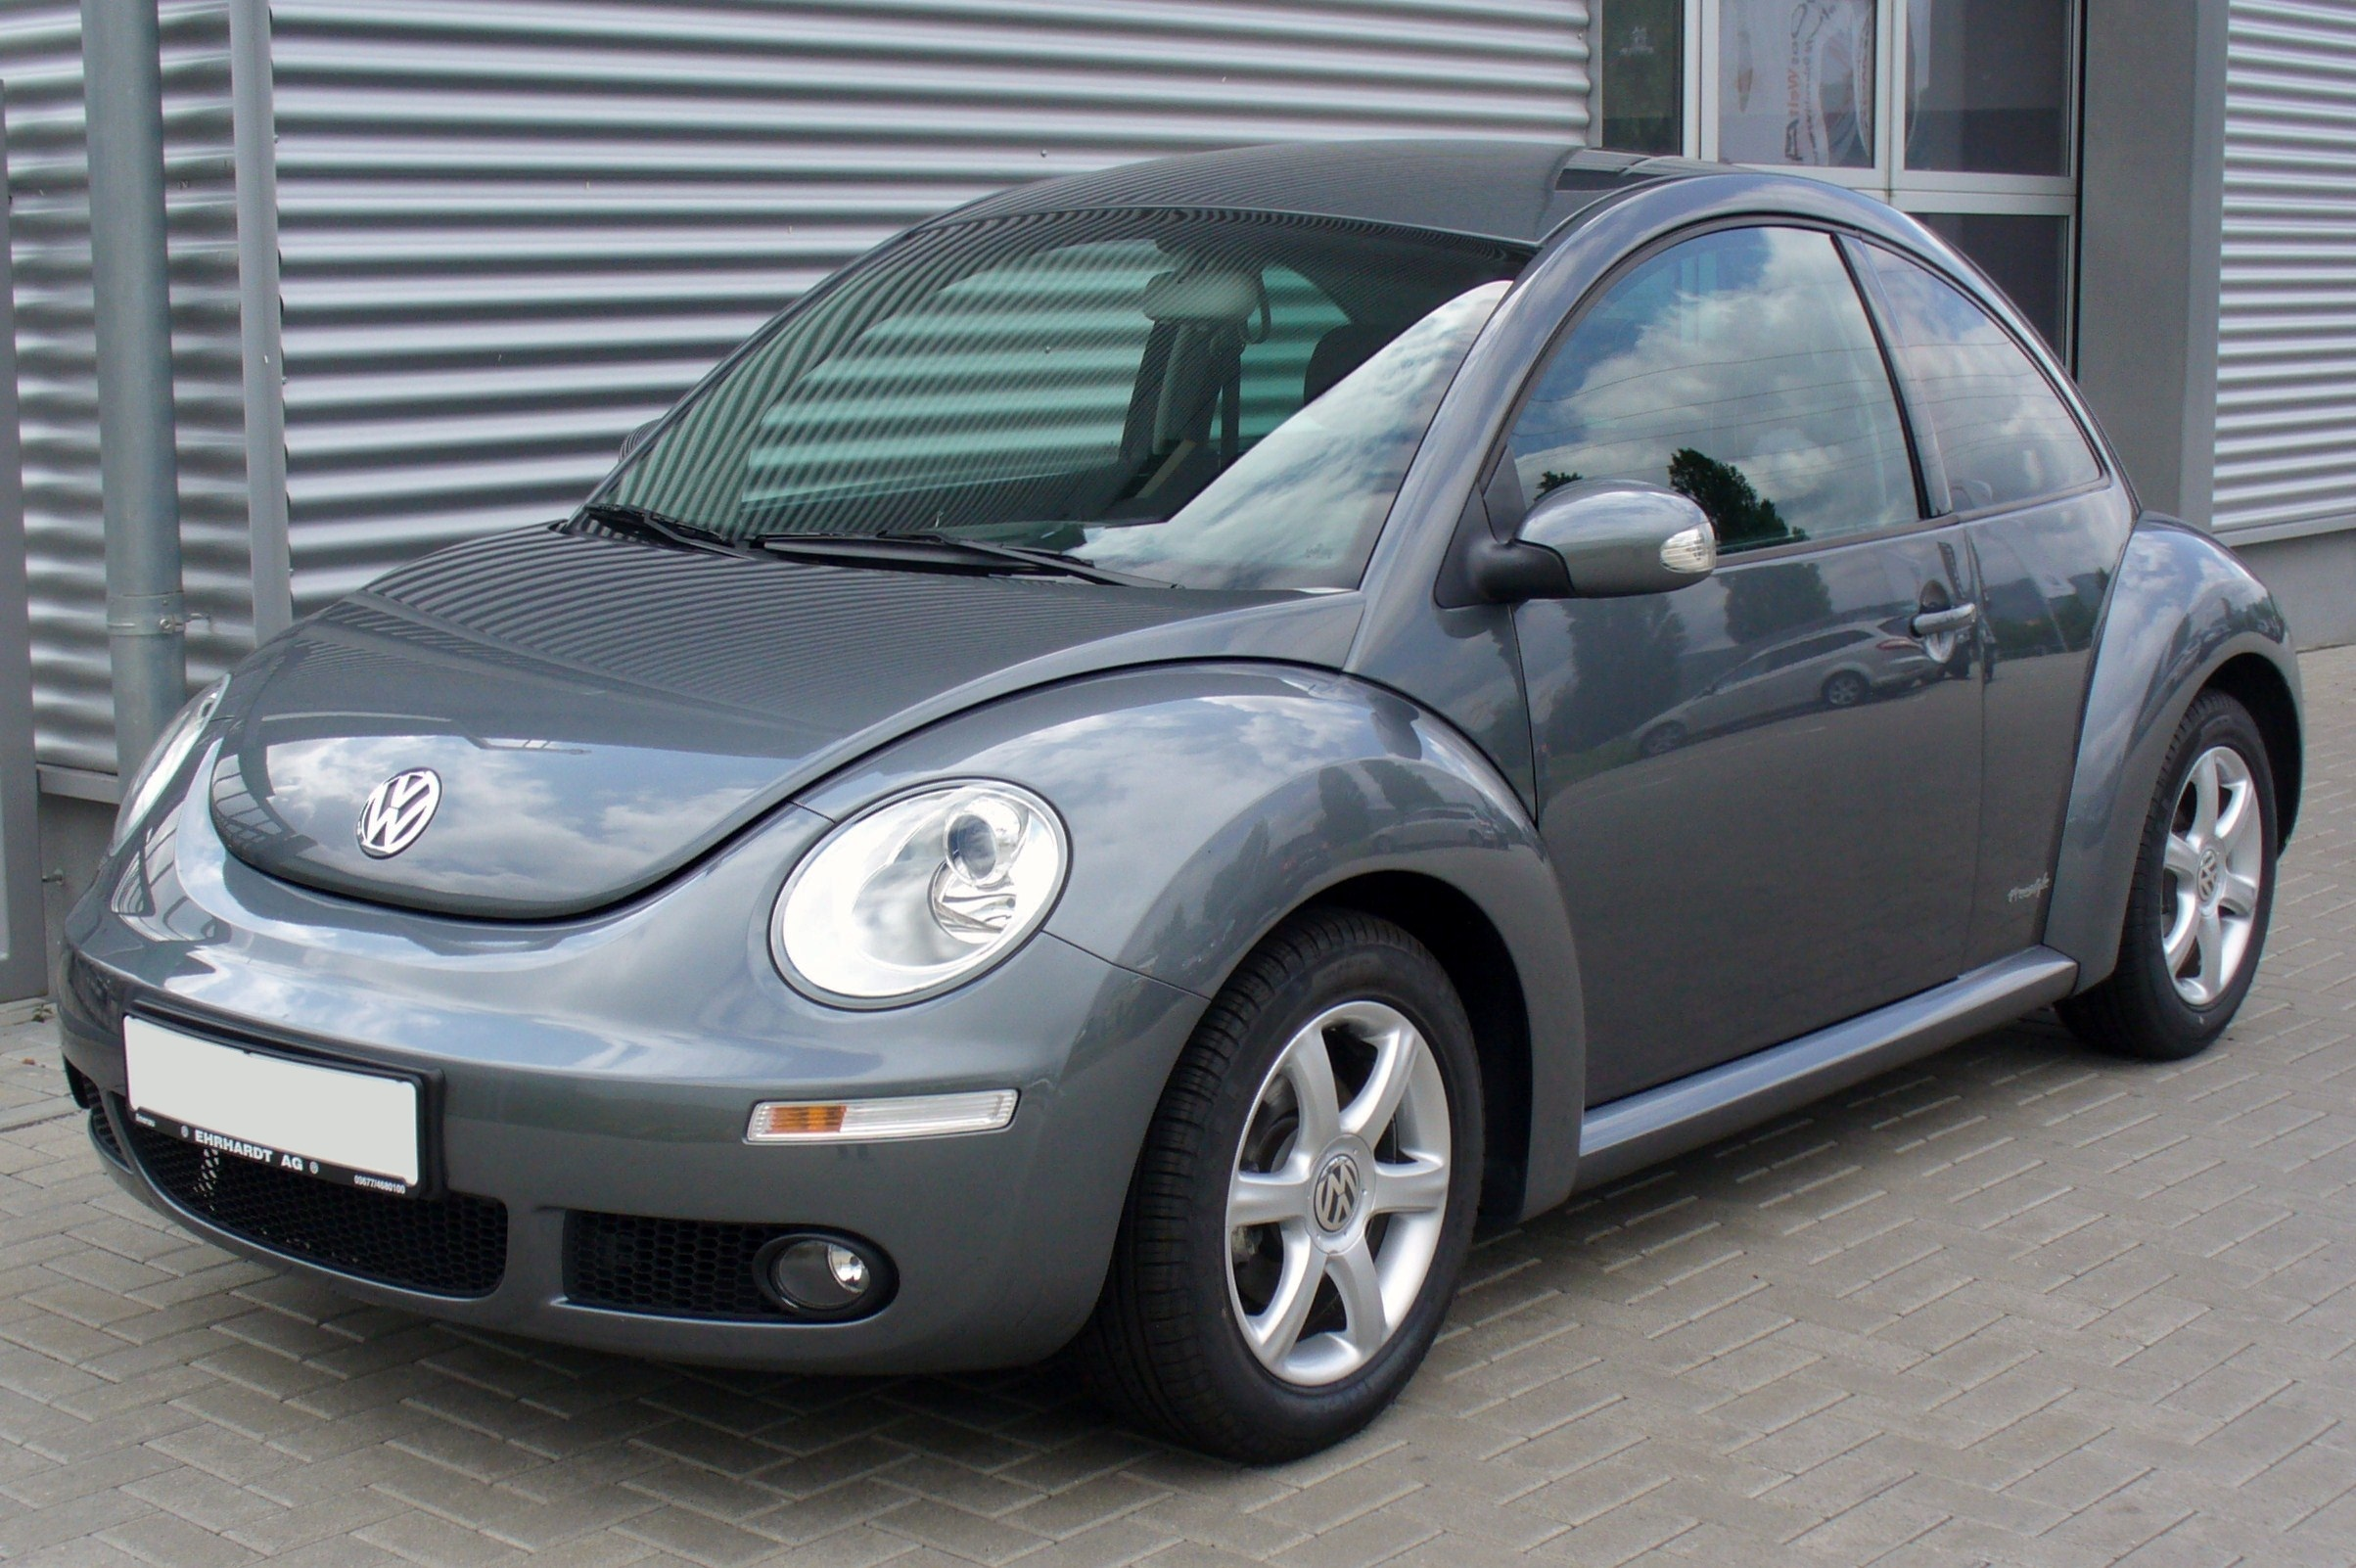 Gray Vw Beetle >> File:VW New Beetle 1.9 TDI Freestyle Platinum Grey.JPG - Wikimedia Commons